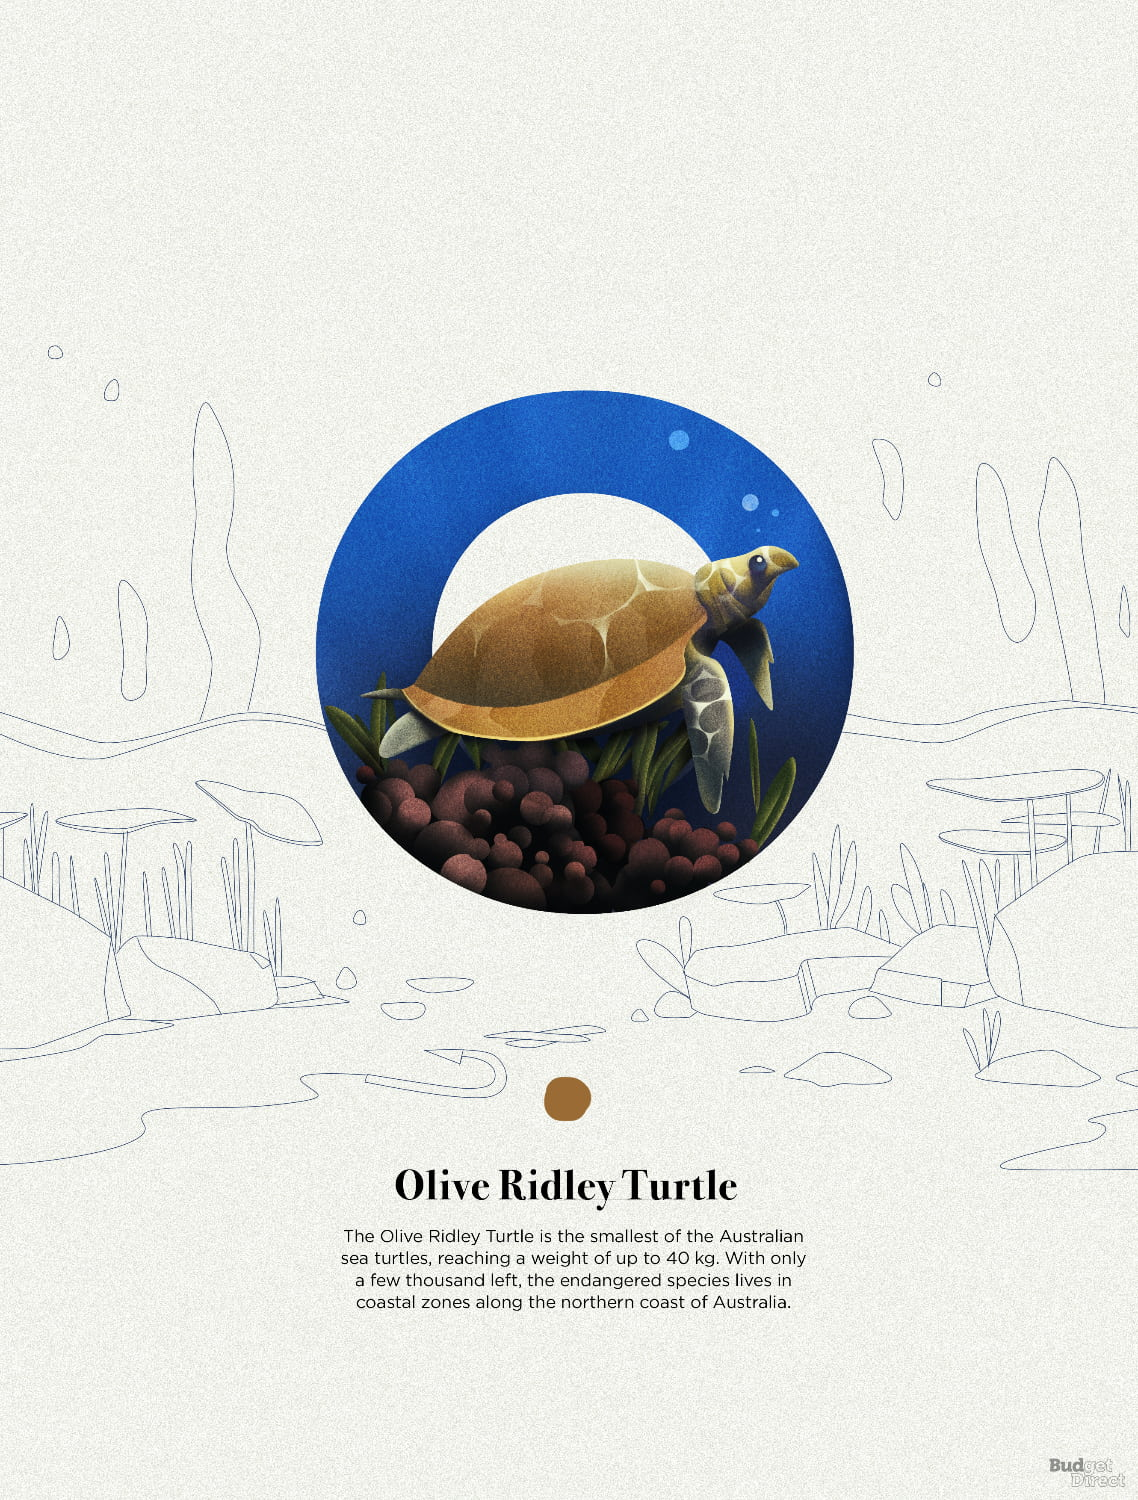 O is for Olive Ridley Turtle